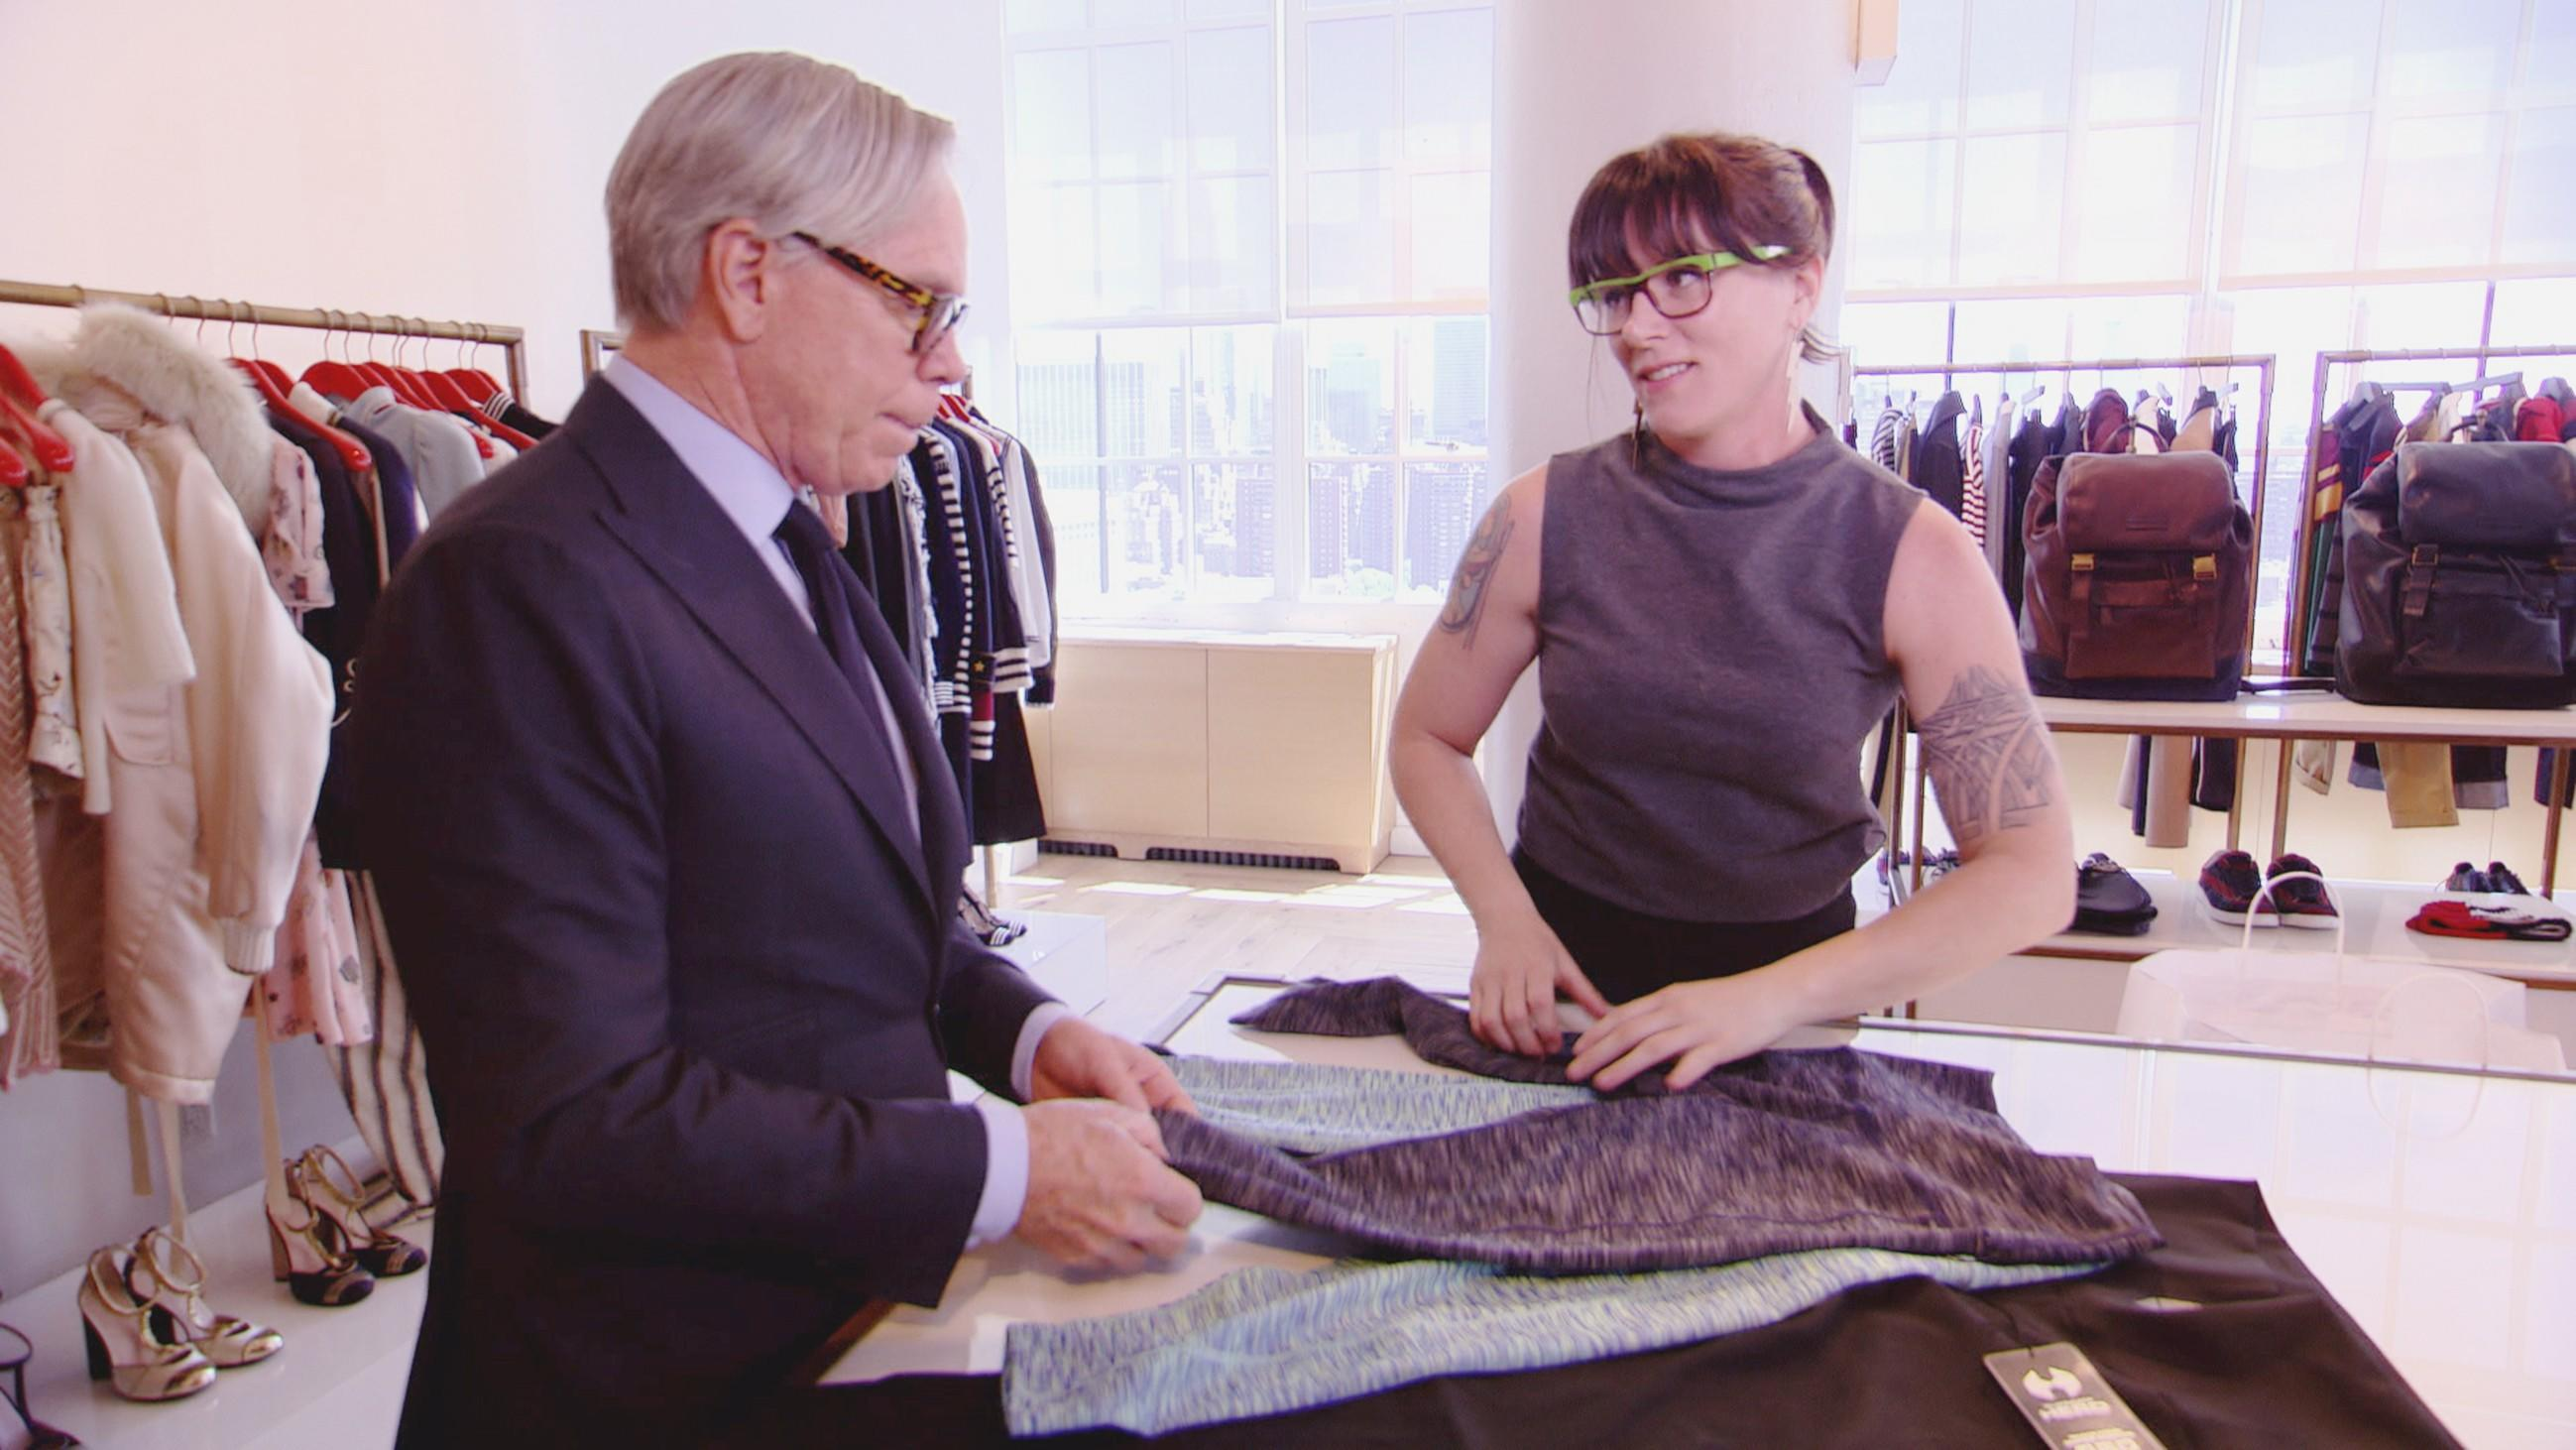 Fashion Start Up - Der Weg ins Mode-Business